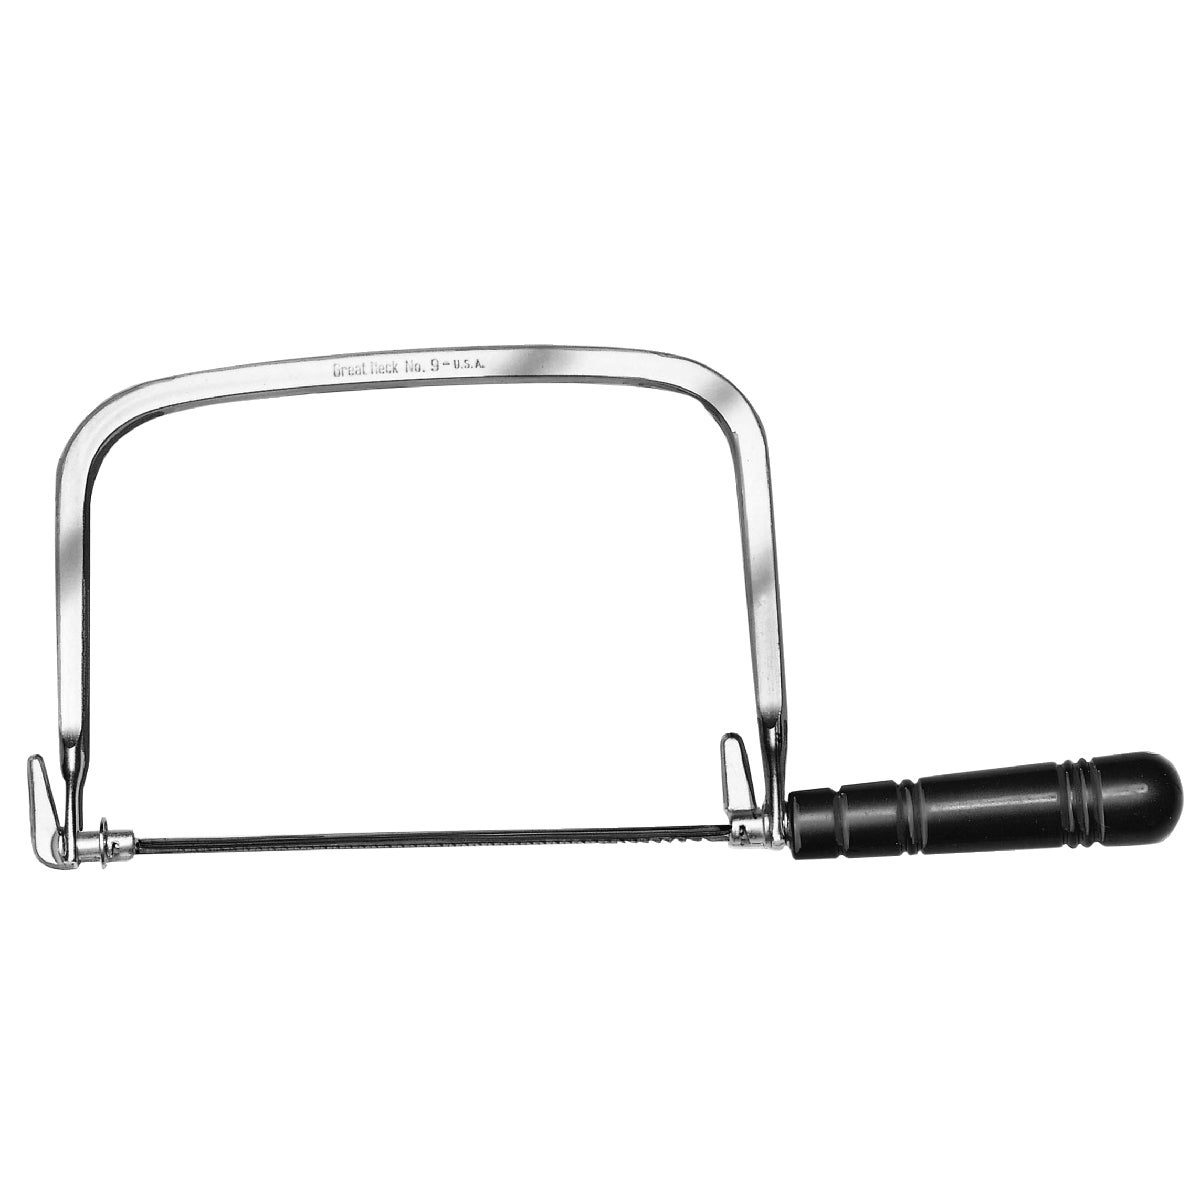 PLASTIC COPING SAW - 318454 by Great Neck Saw Inc